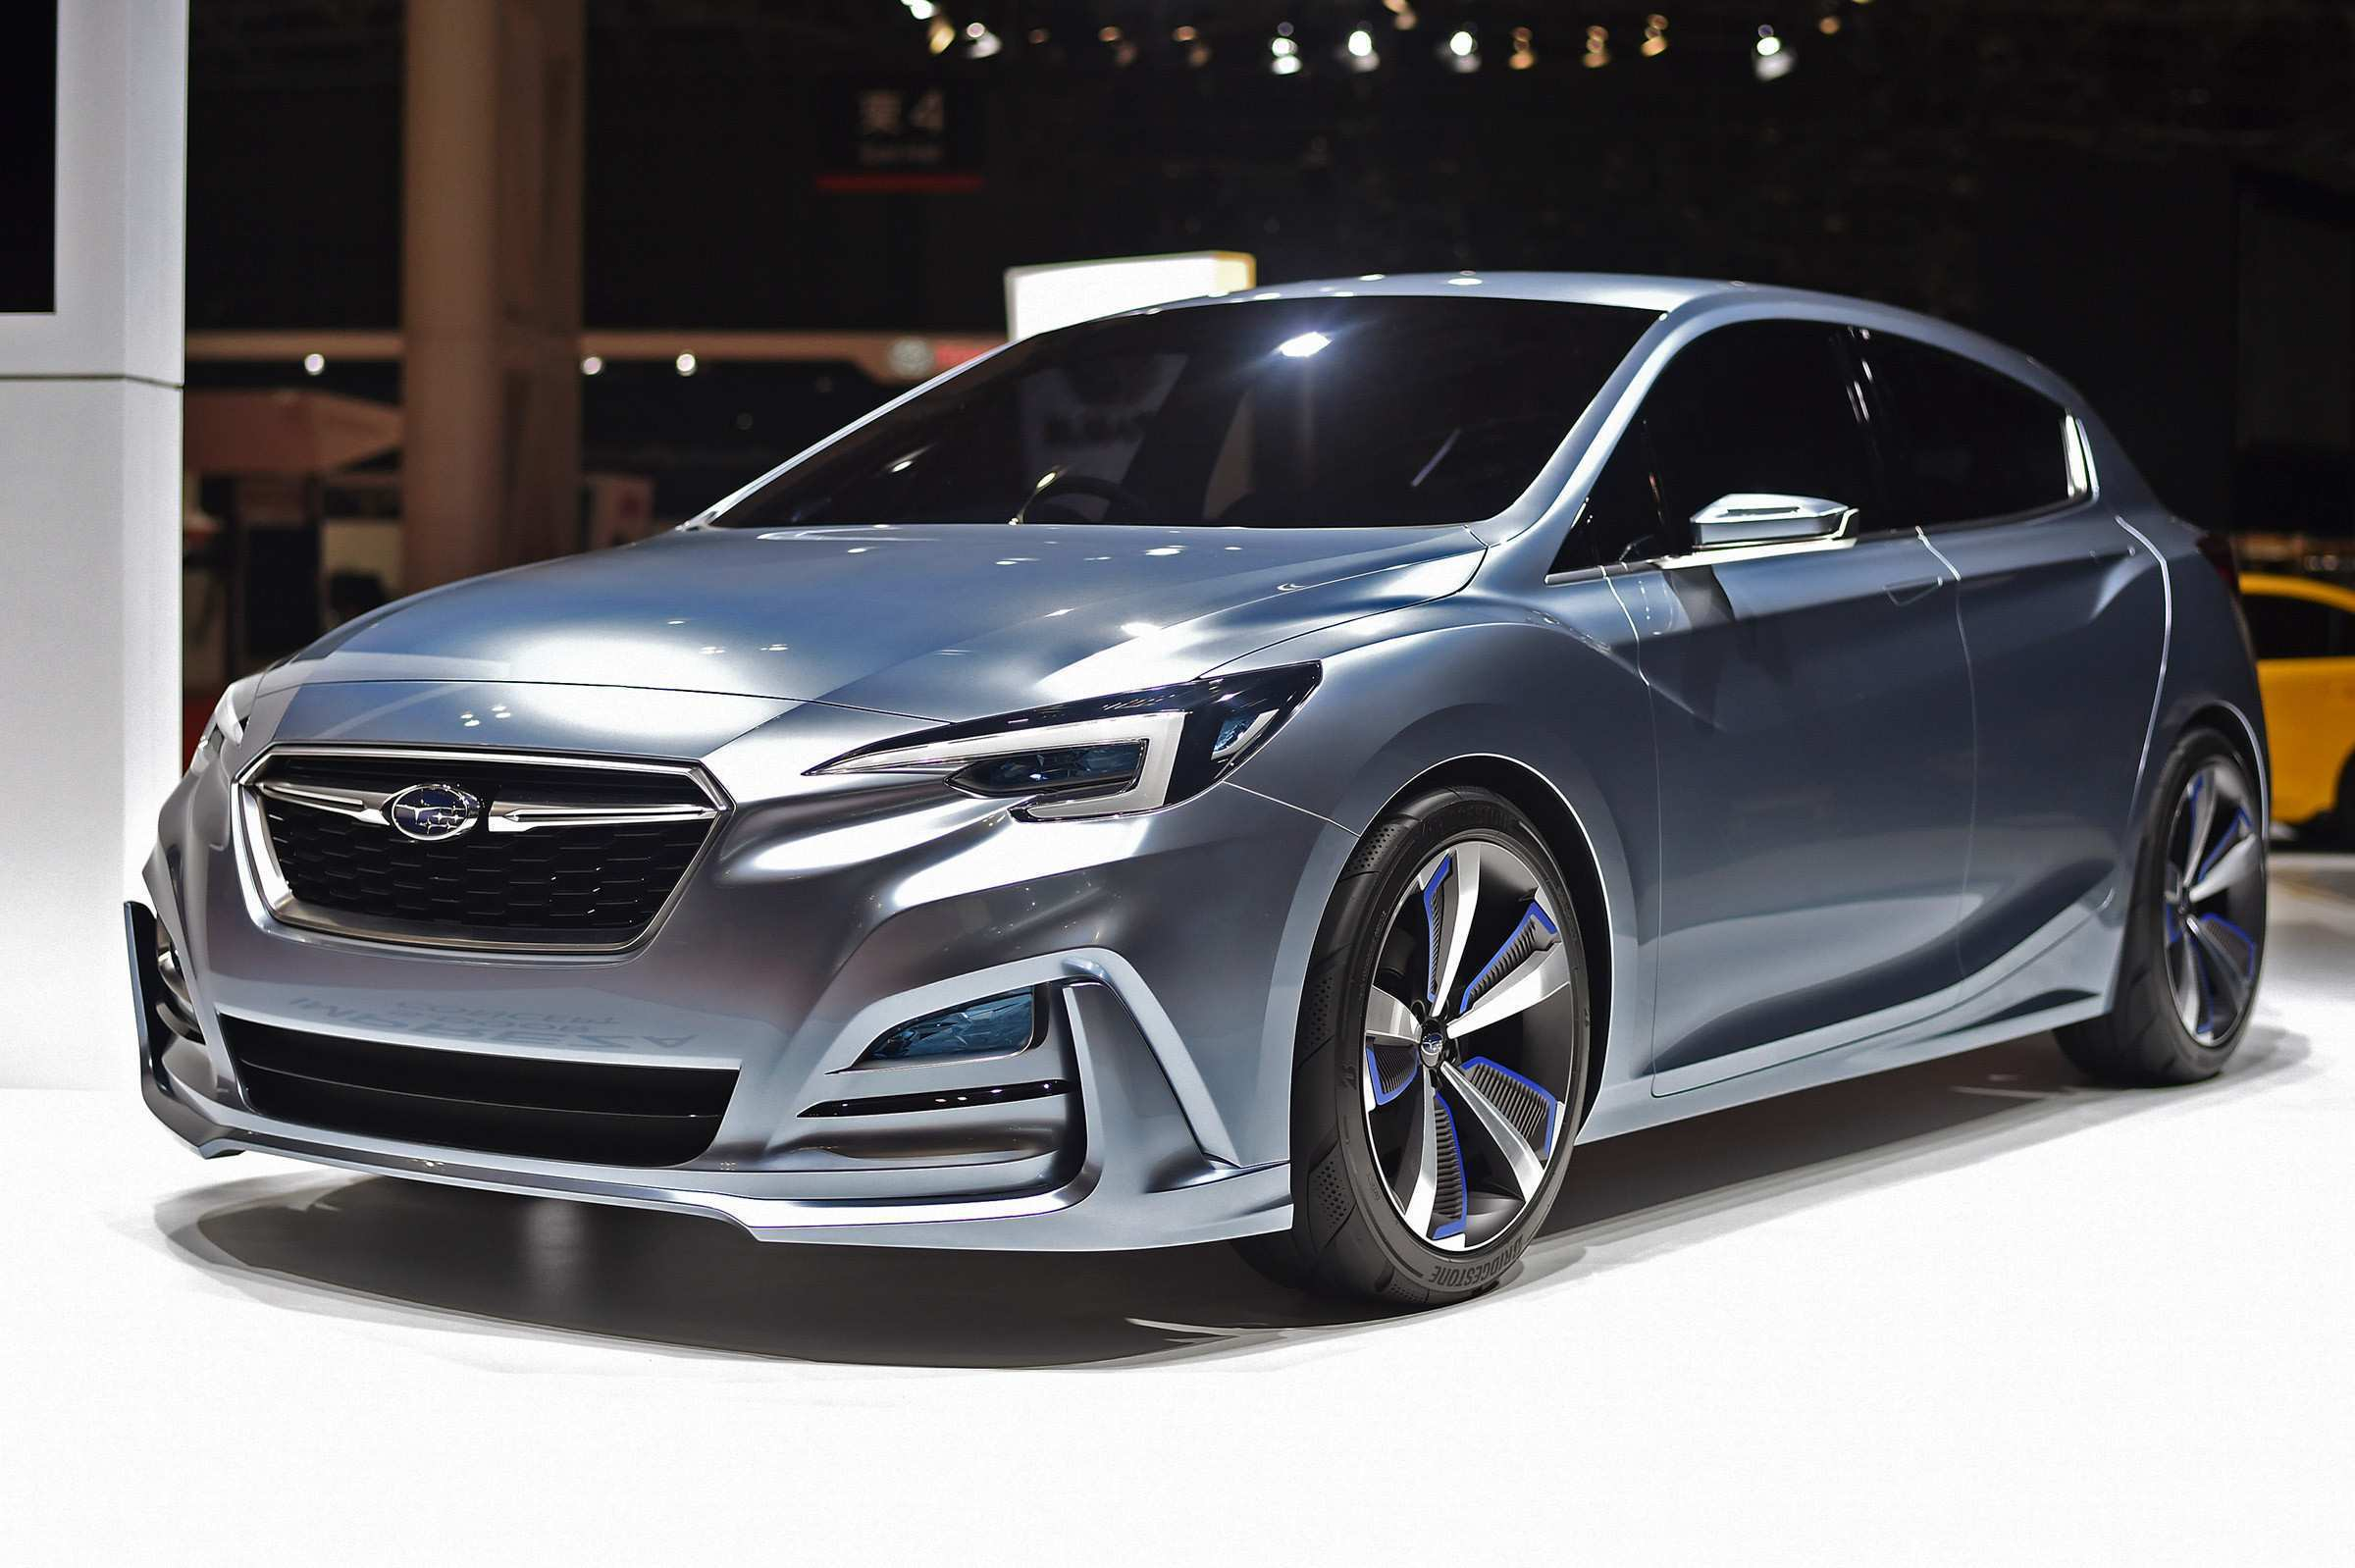 58 New Yeni Opel Astra 2020 Pictures